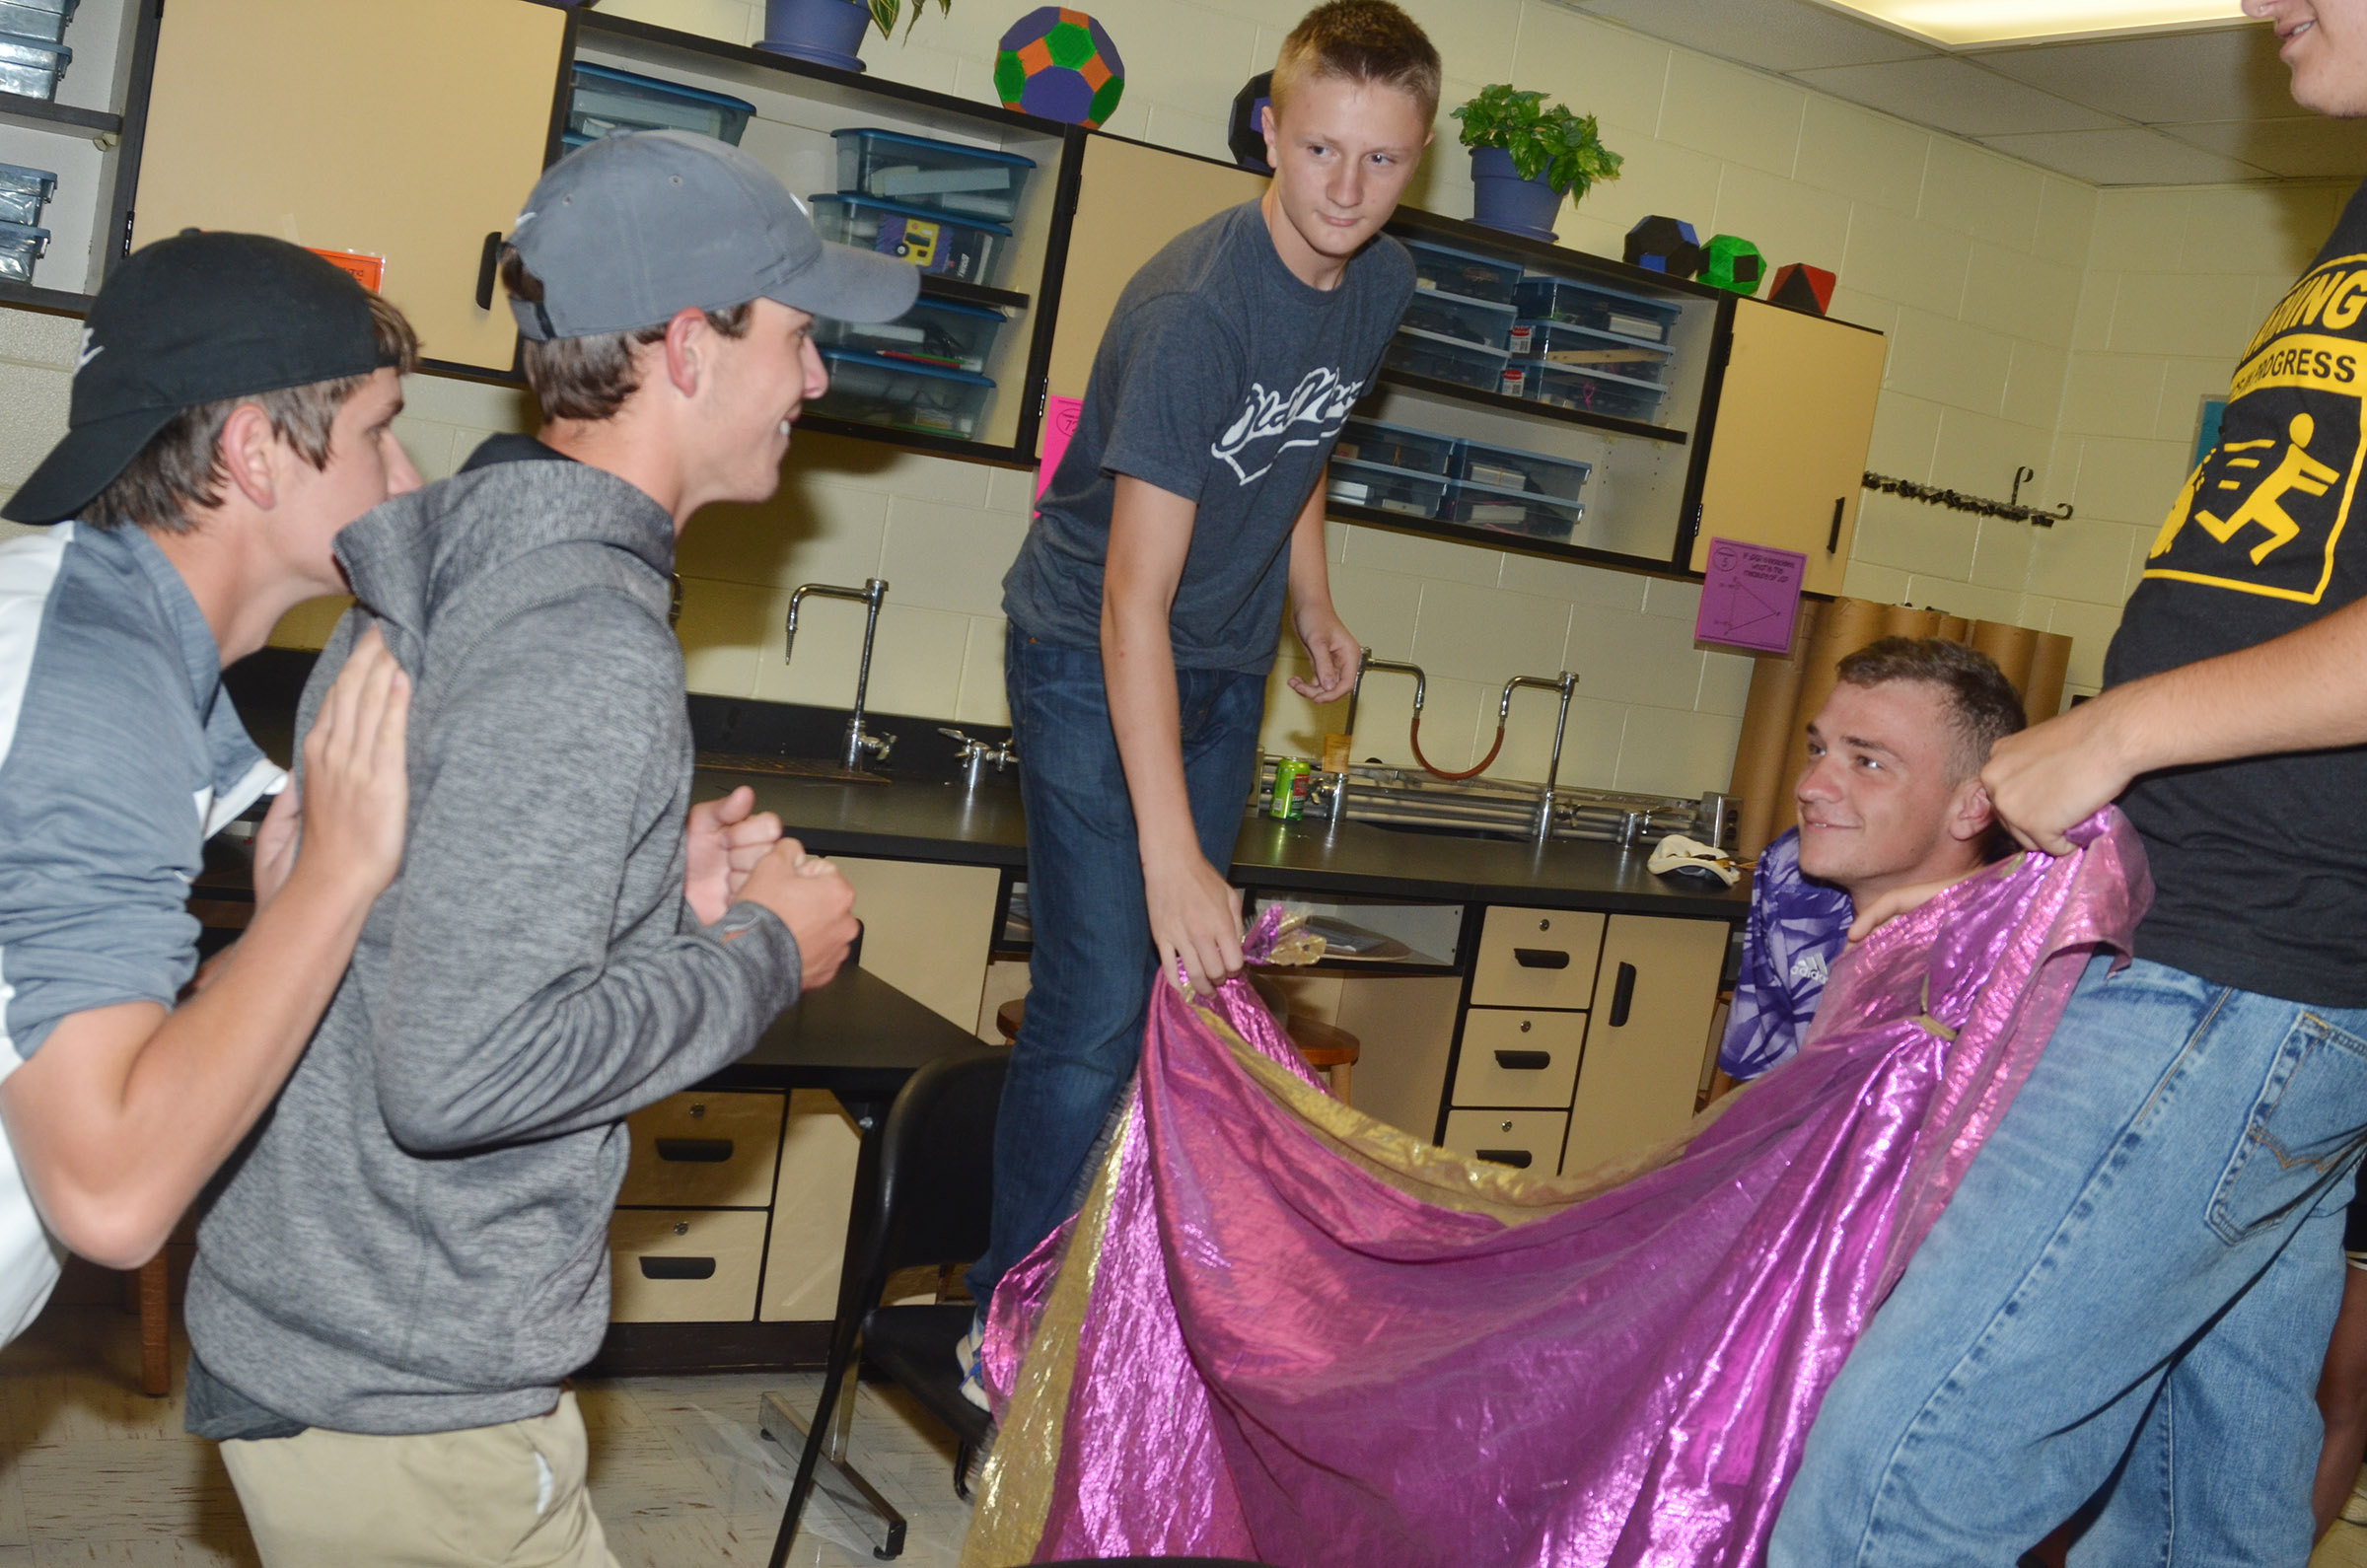 CHS juniors Myles Murrell and Layton Hord, at left, play the behind the curtain game with senior Connor Wilson.